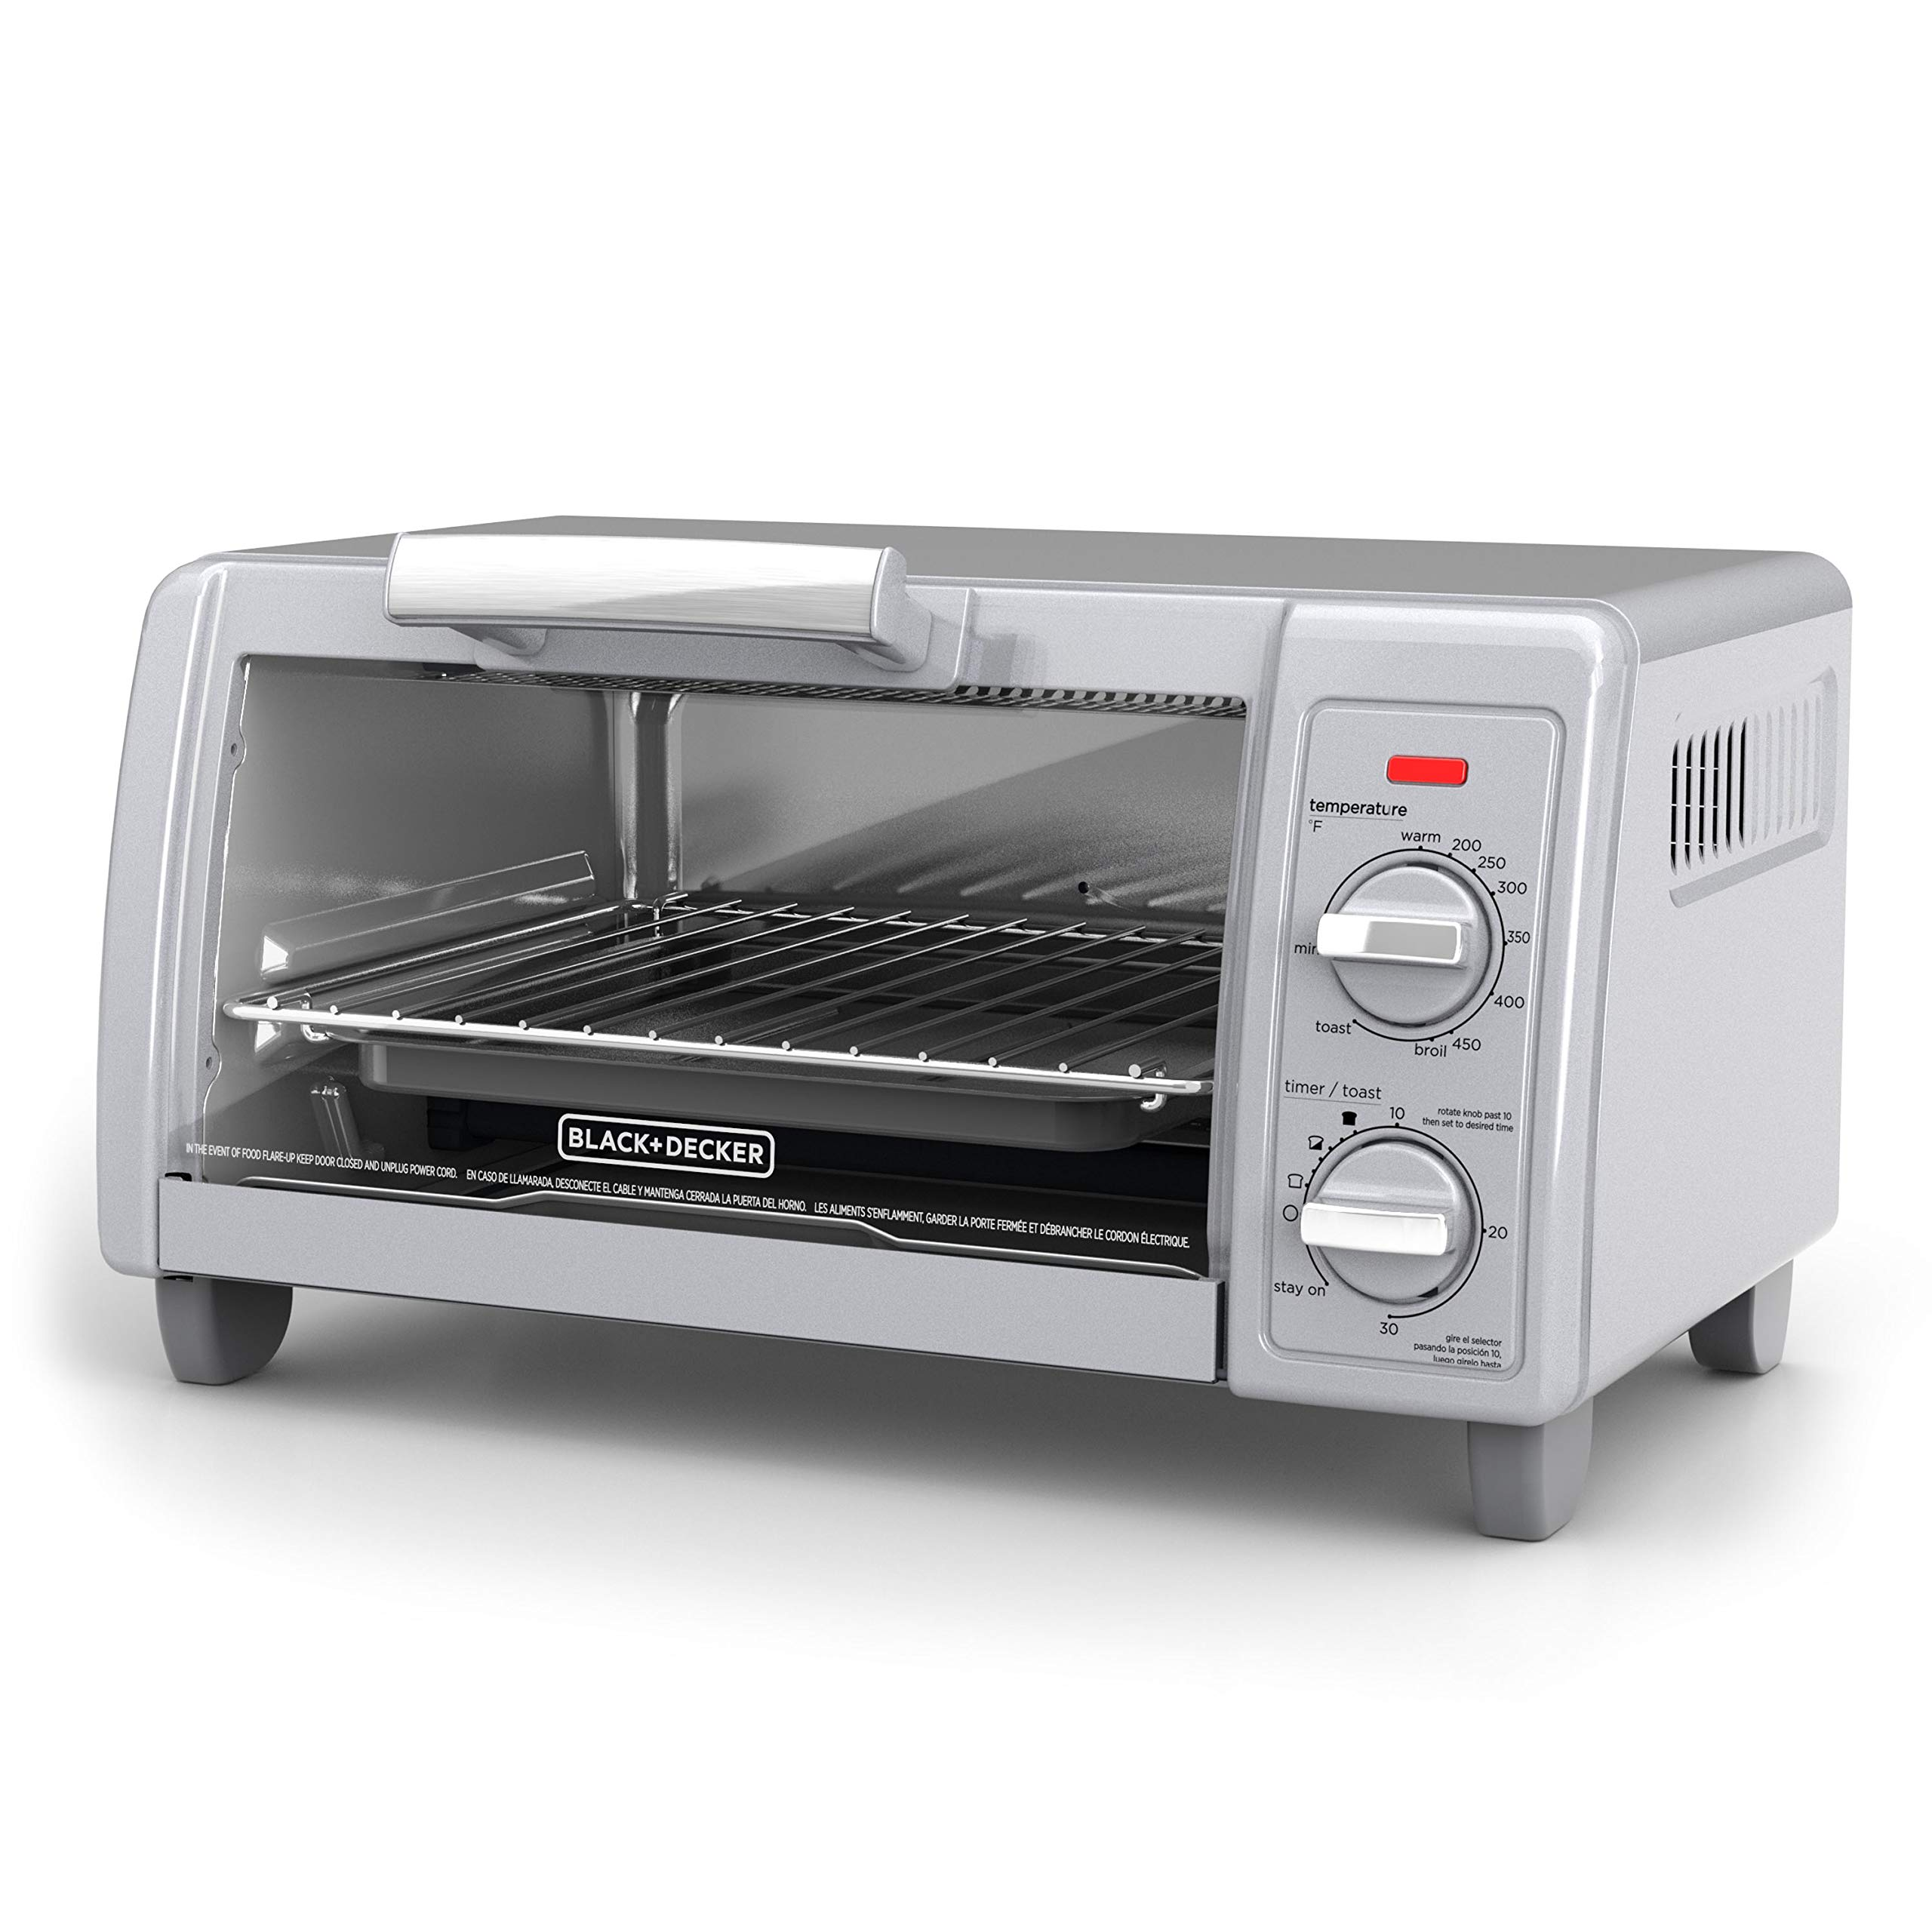 BLACK+DECKER  4-Slice Toaster Oven with Easy Controls, Silver, TO1705SG by BLACK+DECKER